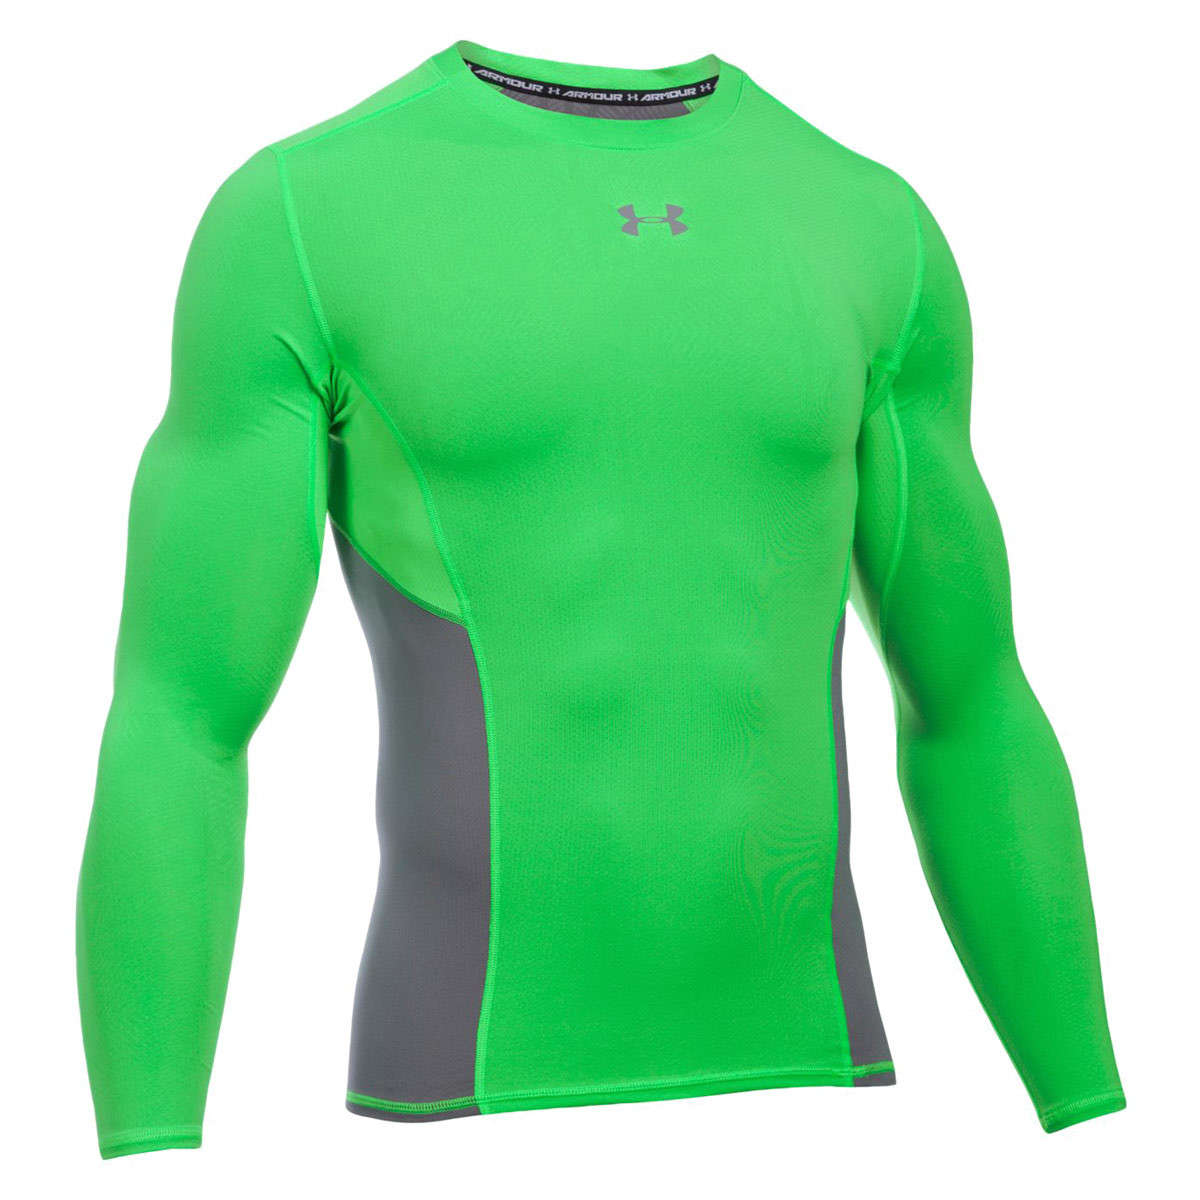 1a87a1b90 Under Armour HG Coolswitch Comp Longsleeve - Running tops for Men - Green |  21RUN